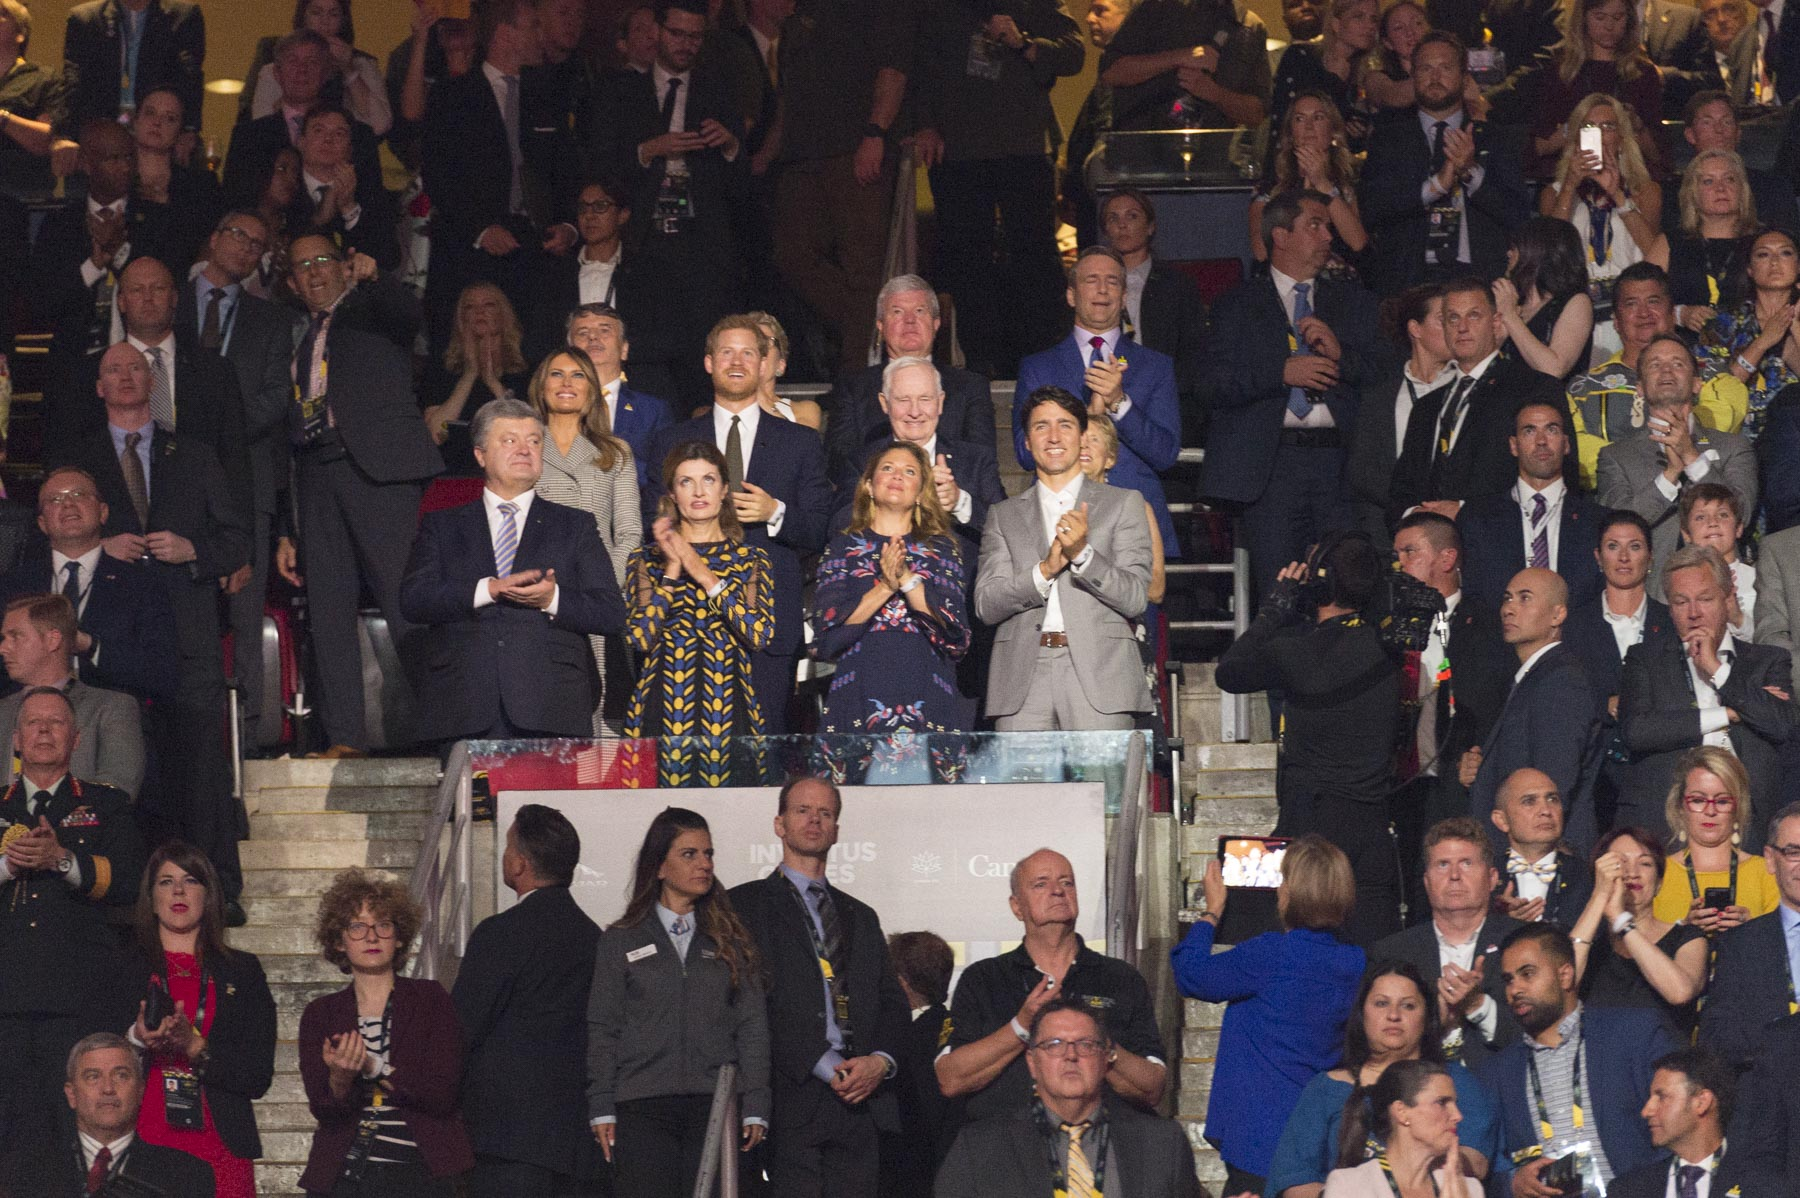 In attendance were Their Excellencies, His Royal Highness Prince Harry, the Prime Minister of Canada Justin Trudeau and his wife Sophie-Grégoire Trudeau.